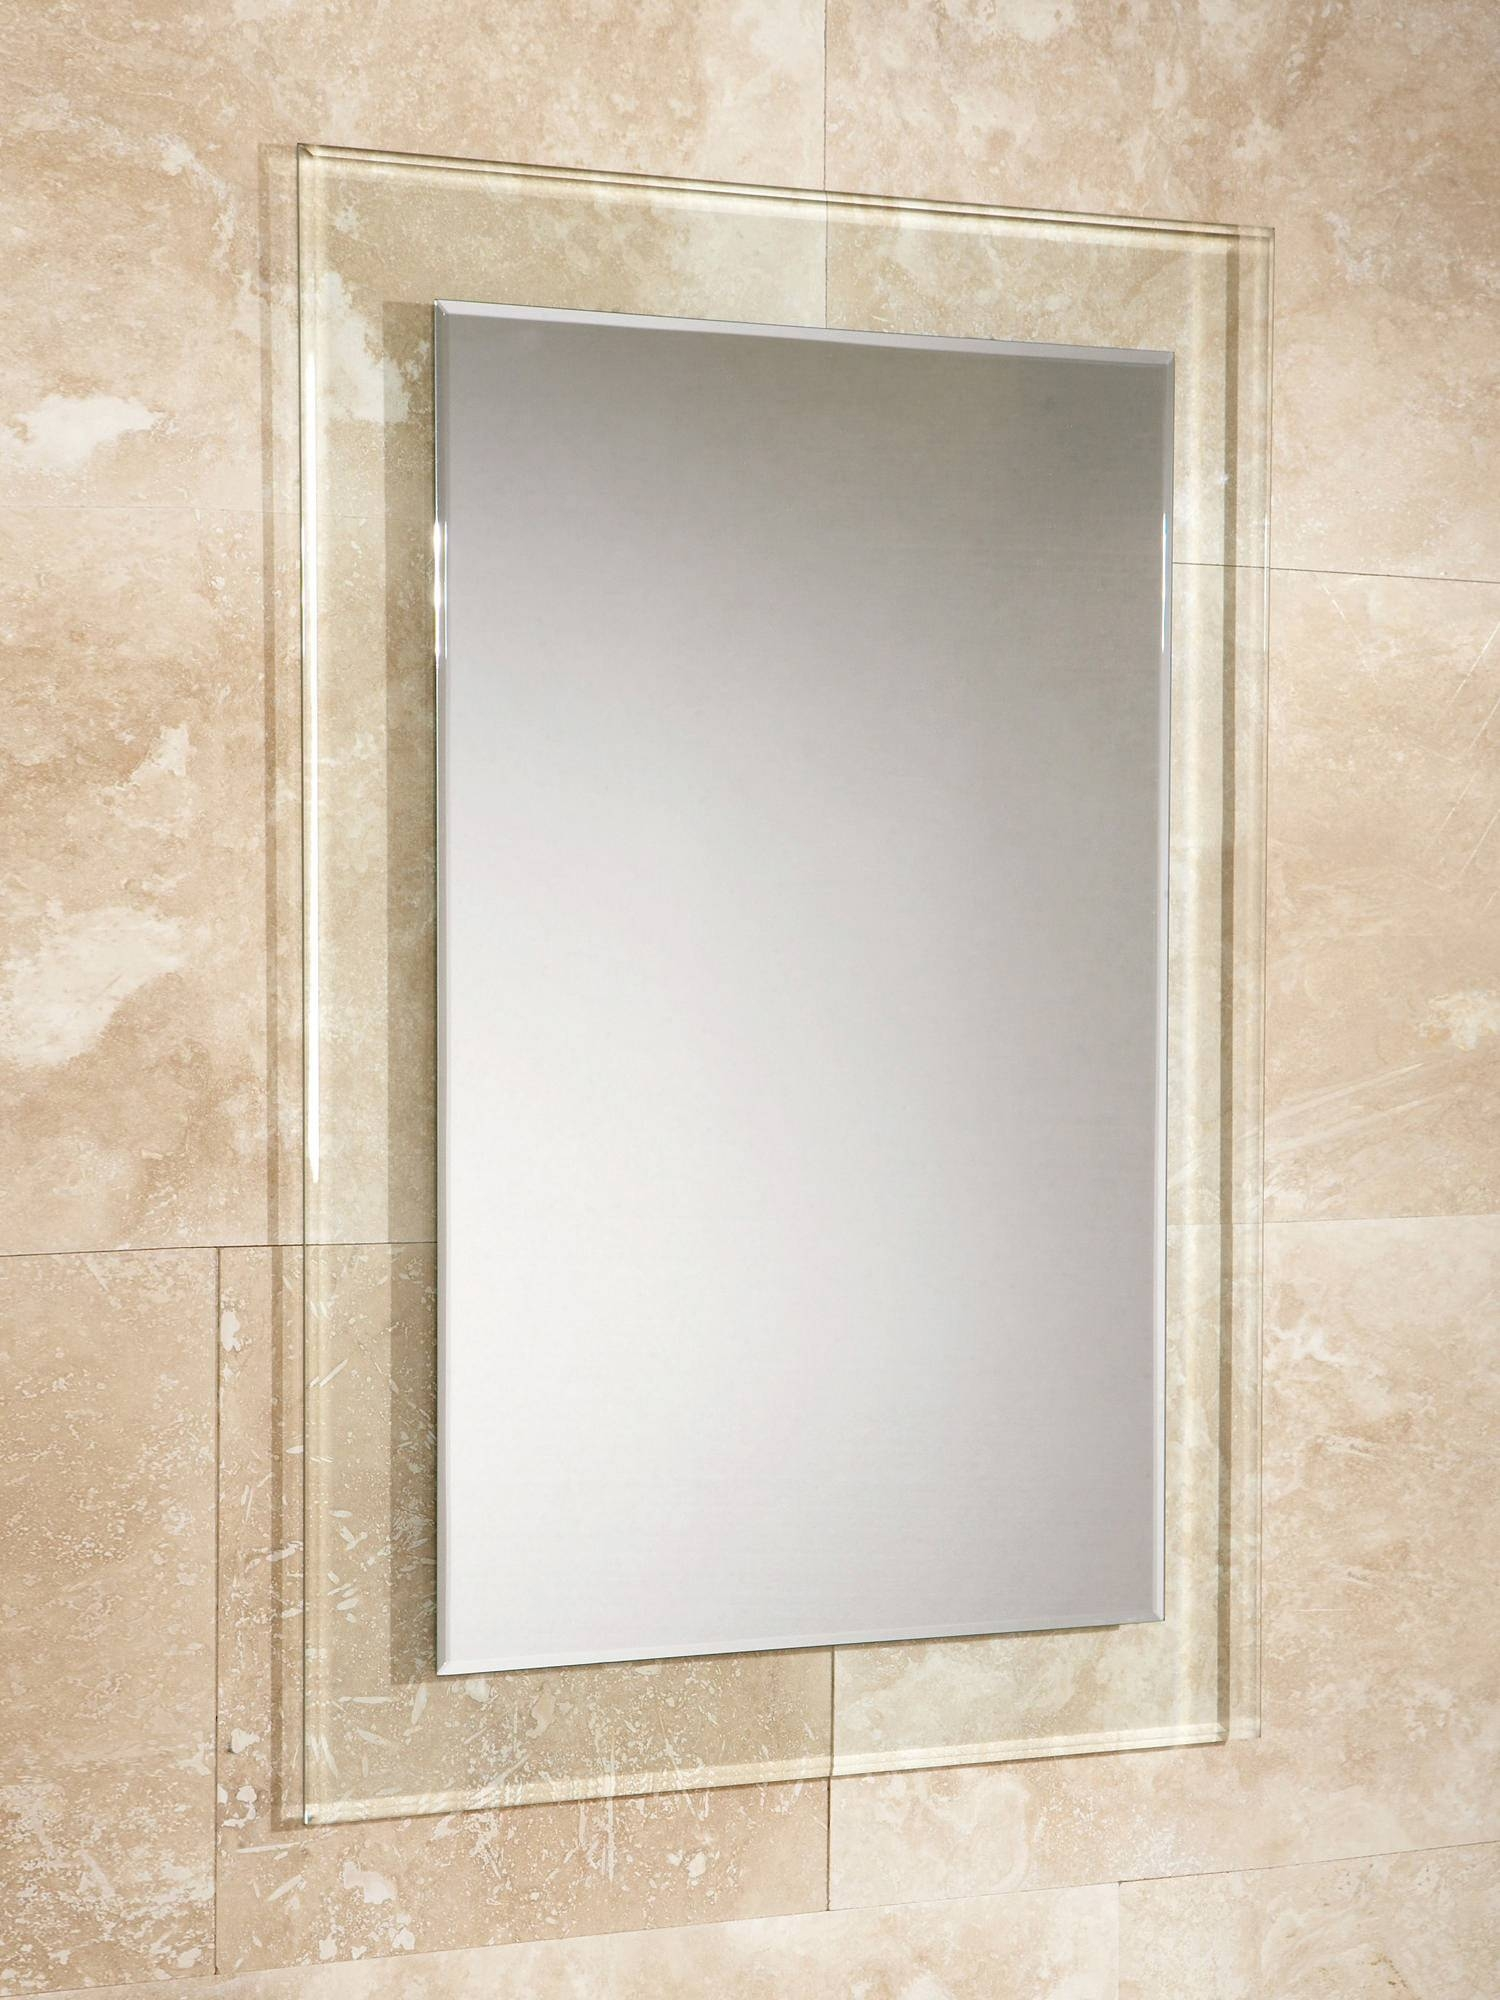 Hib Lola Bevelled Edge Mirror With Clear Glass Frame 500 X 700Mm for Bevelled Edge Mirrors (Image 10 of 15)